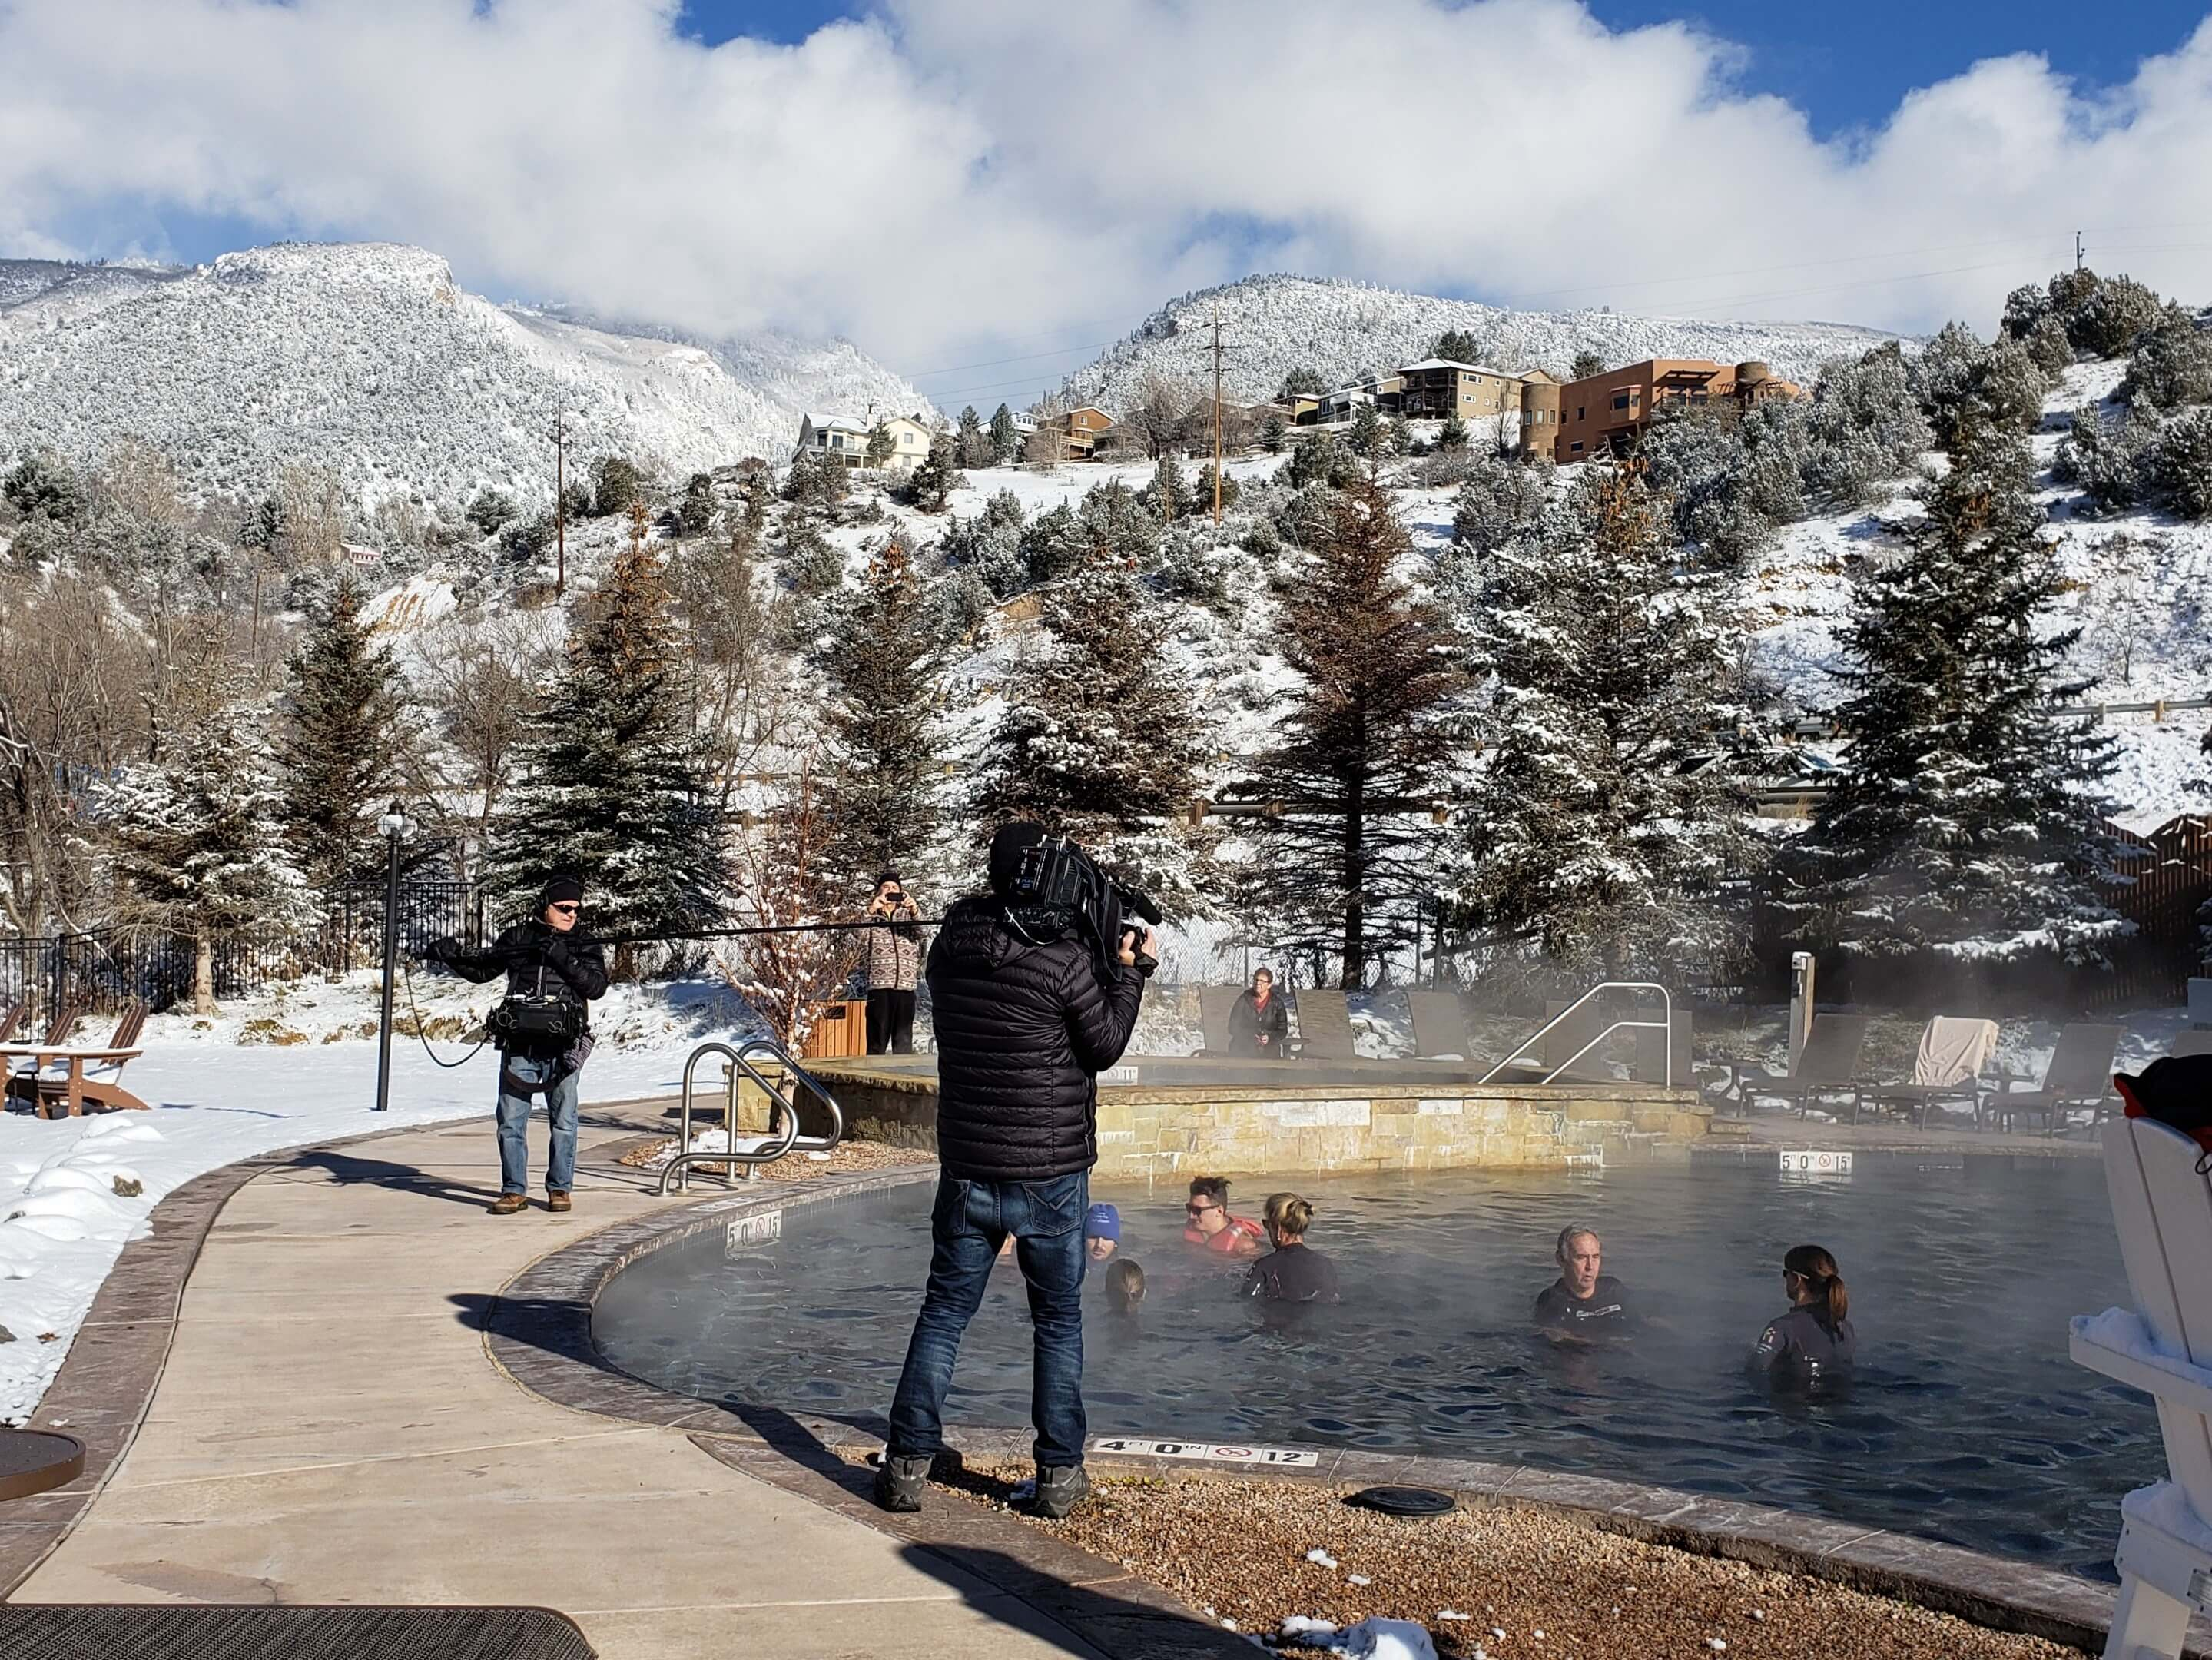 Today Show crew filming neuroplastic functional training at Iron Mountain Hot Springs